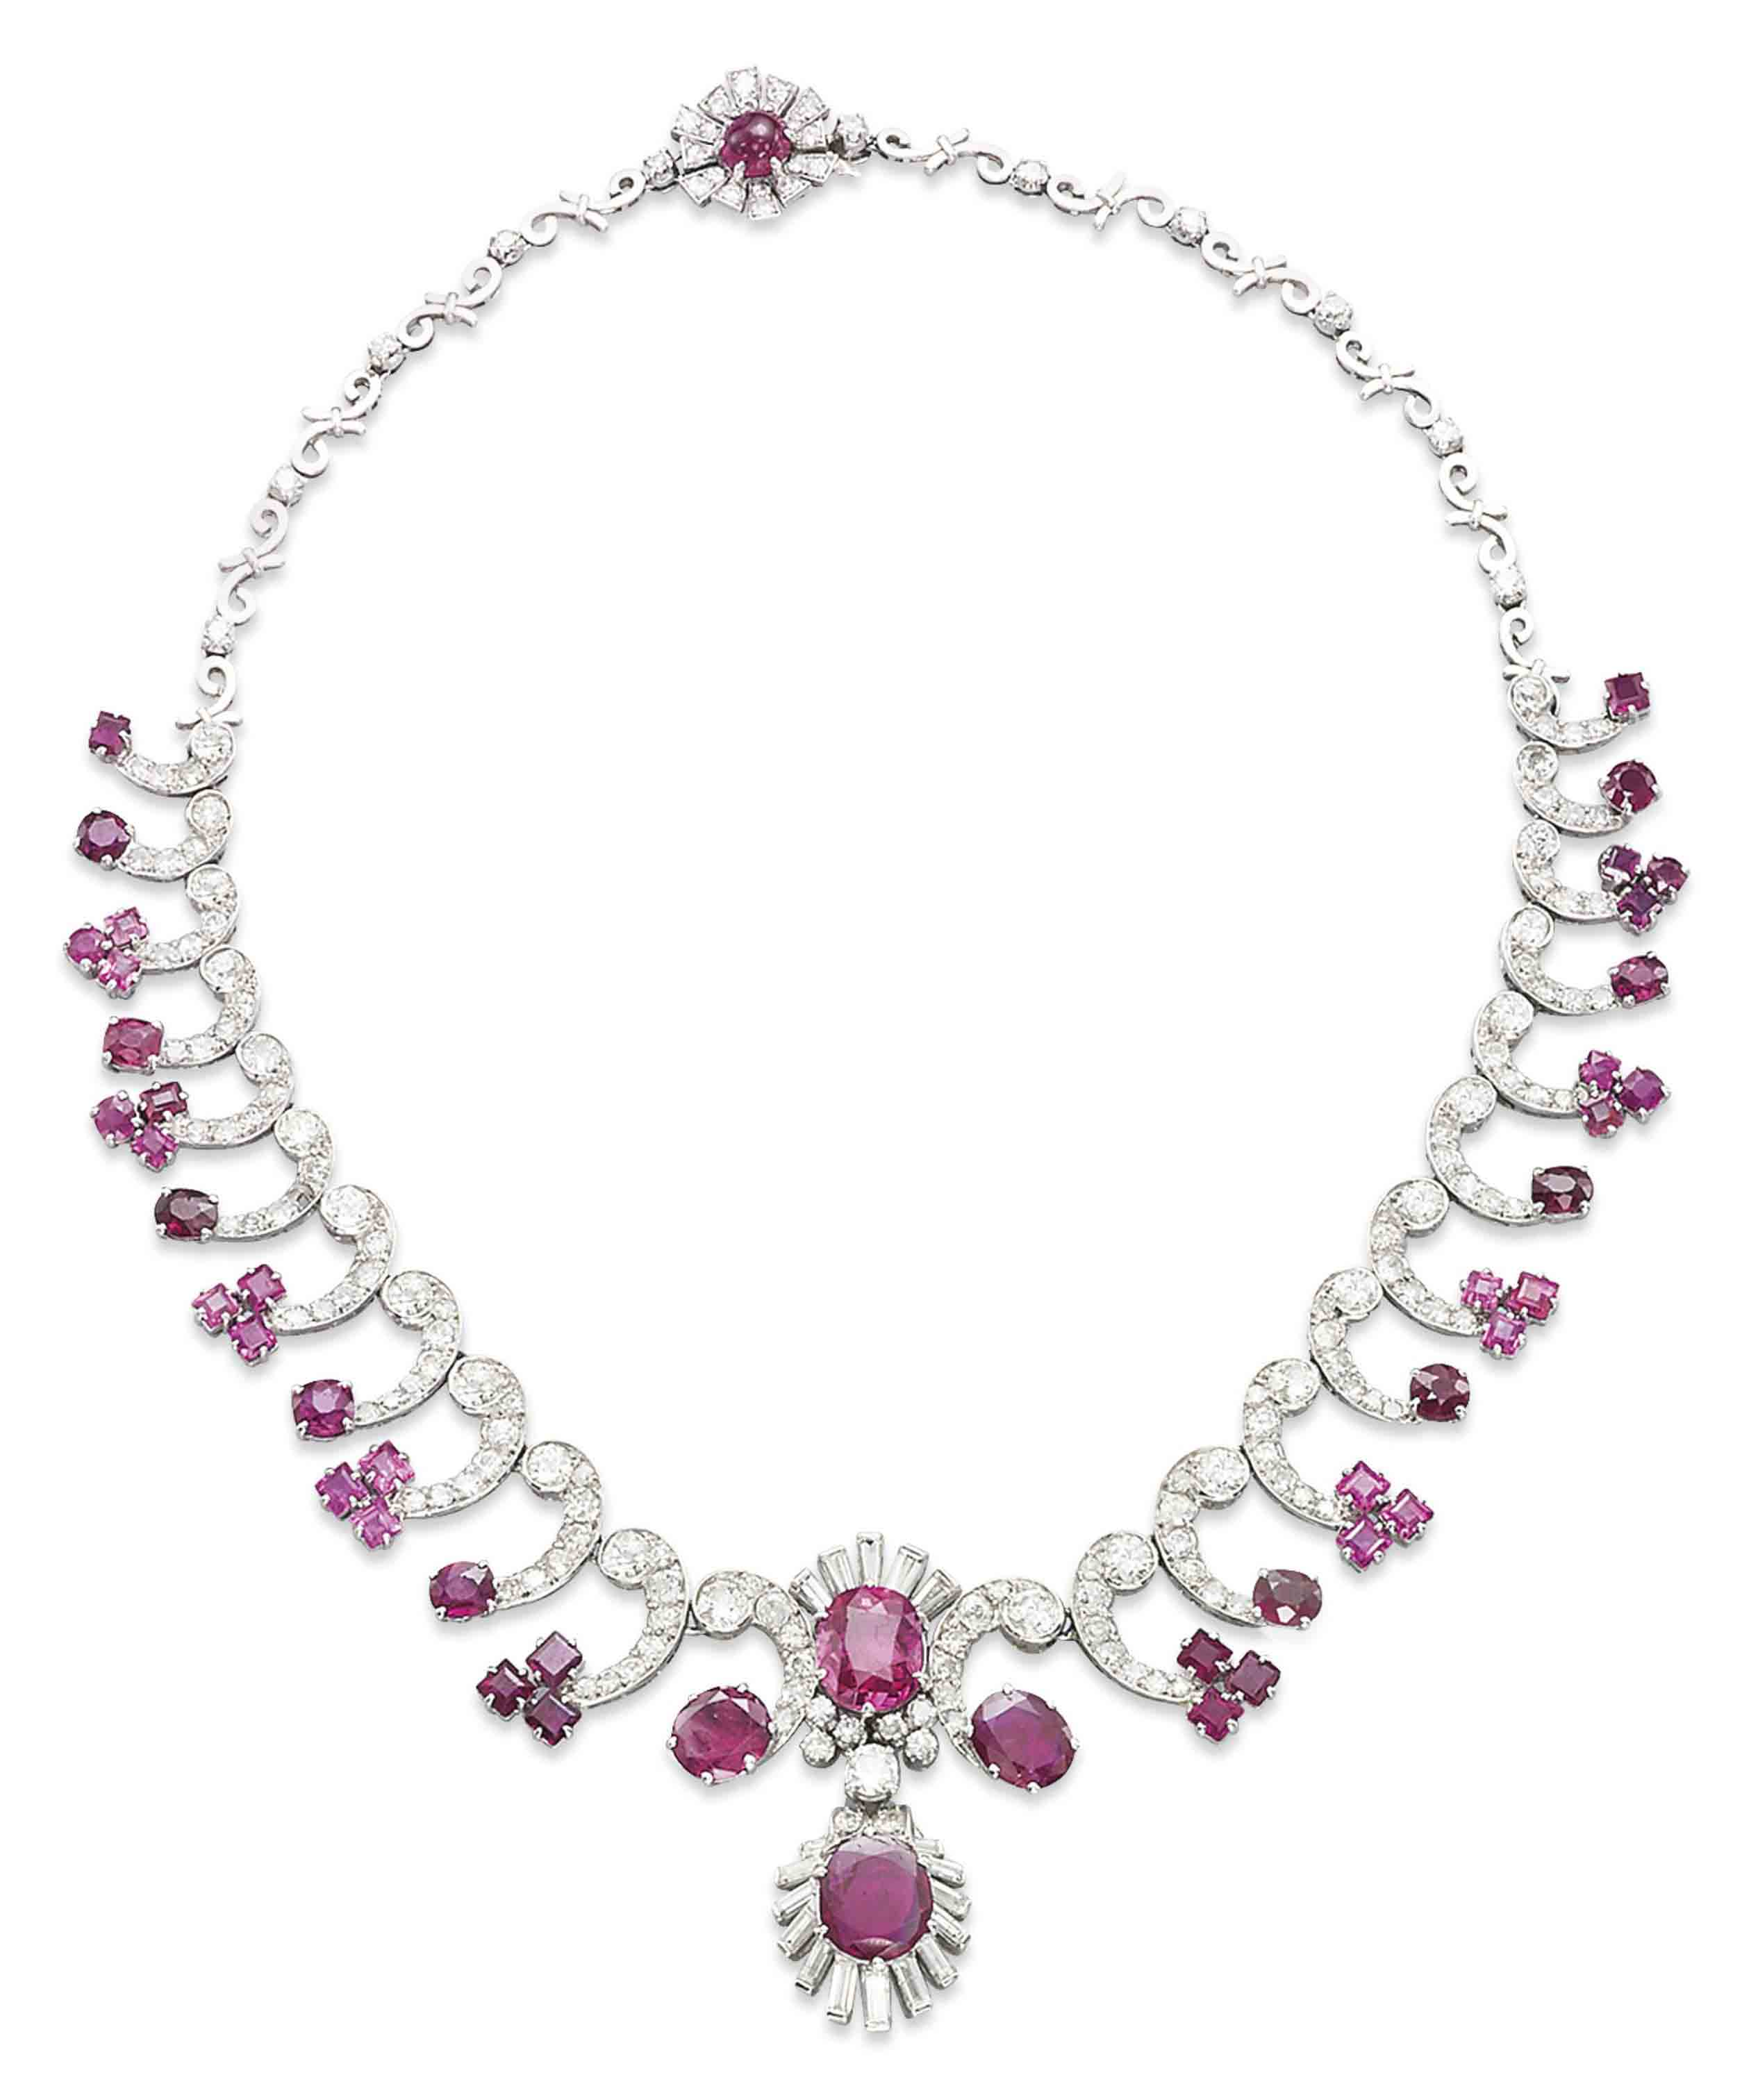 Pink Ruby Jewellery: A RUBY, PINK SAPPHIRE AND DIAMOND NECKLACE